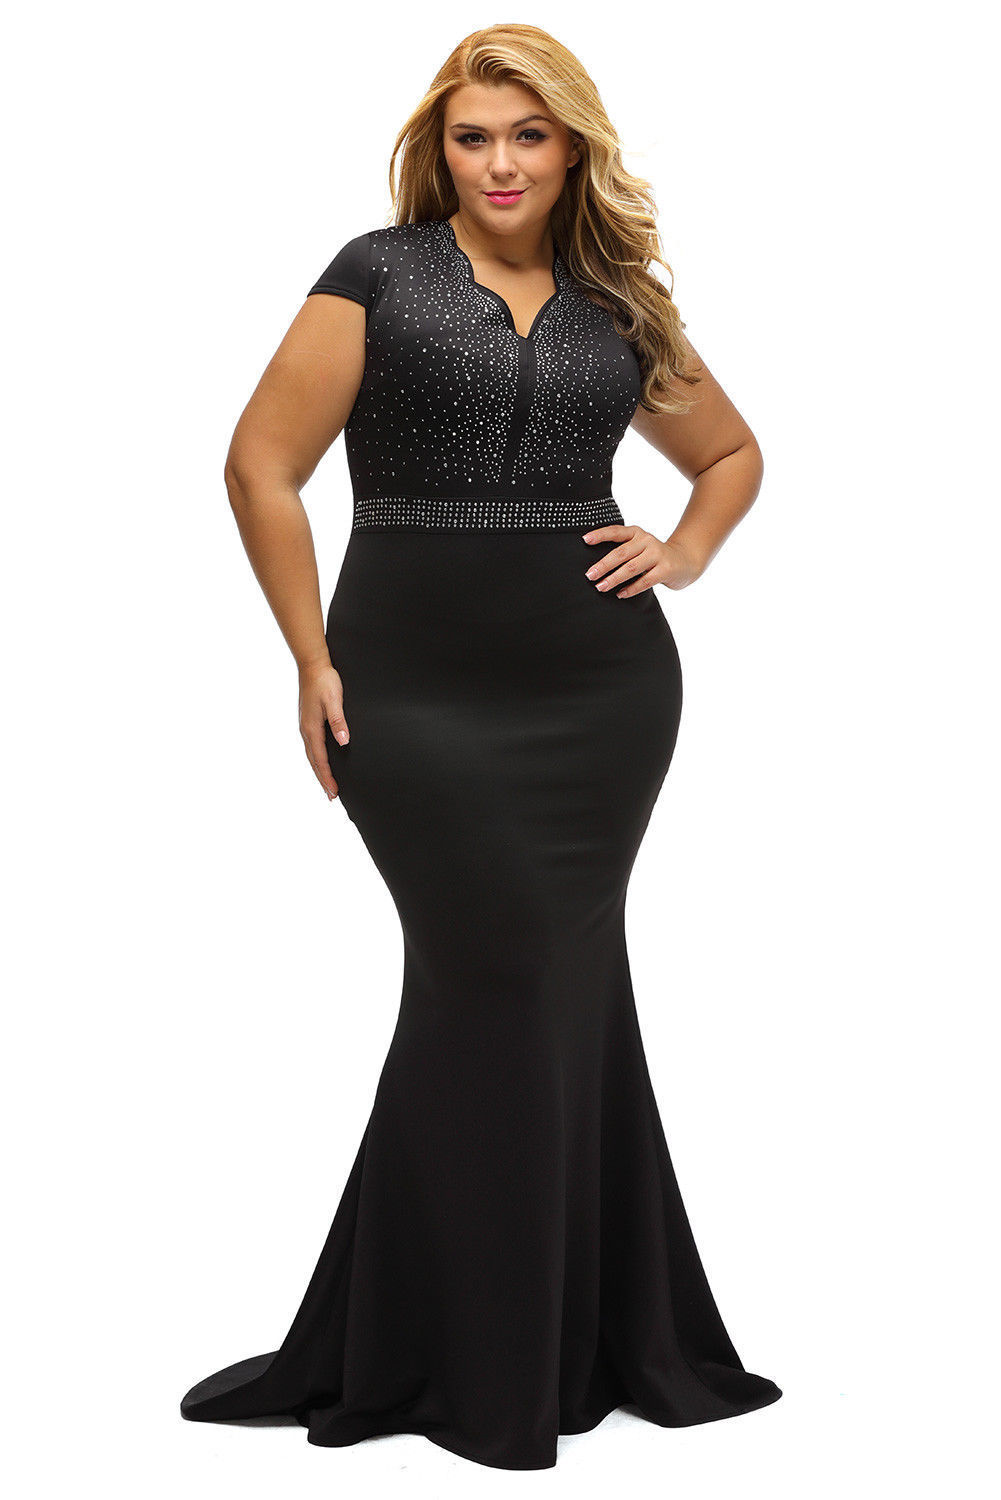 bde4688cf39 US Plus Size Women Bridesmaid Ball Gown Prom Evening Party Cocktail Maxi  Dress